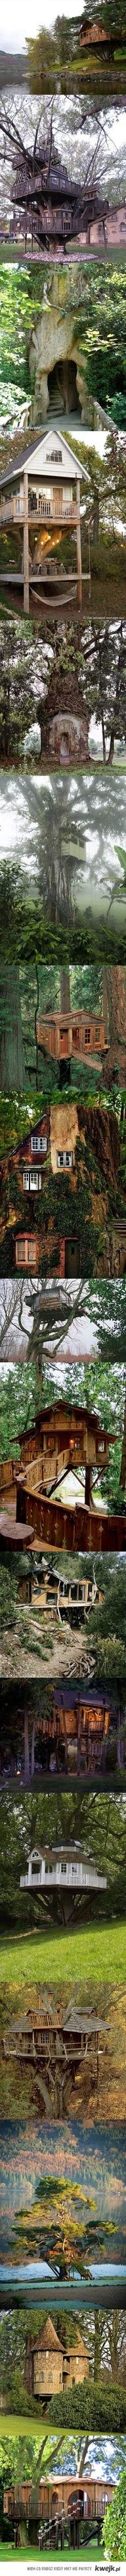 I now see the legitimate possibilities of living in a tree house for the rest of my life. My future has been decided.